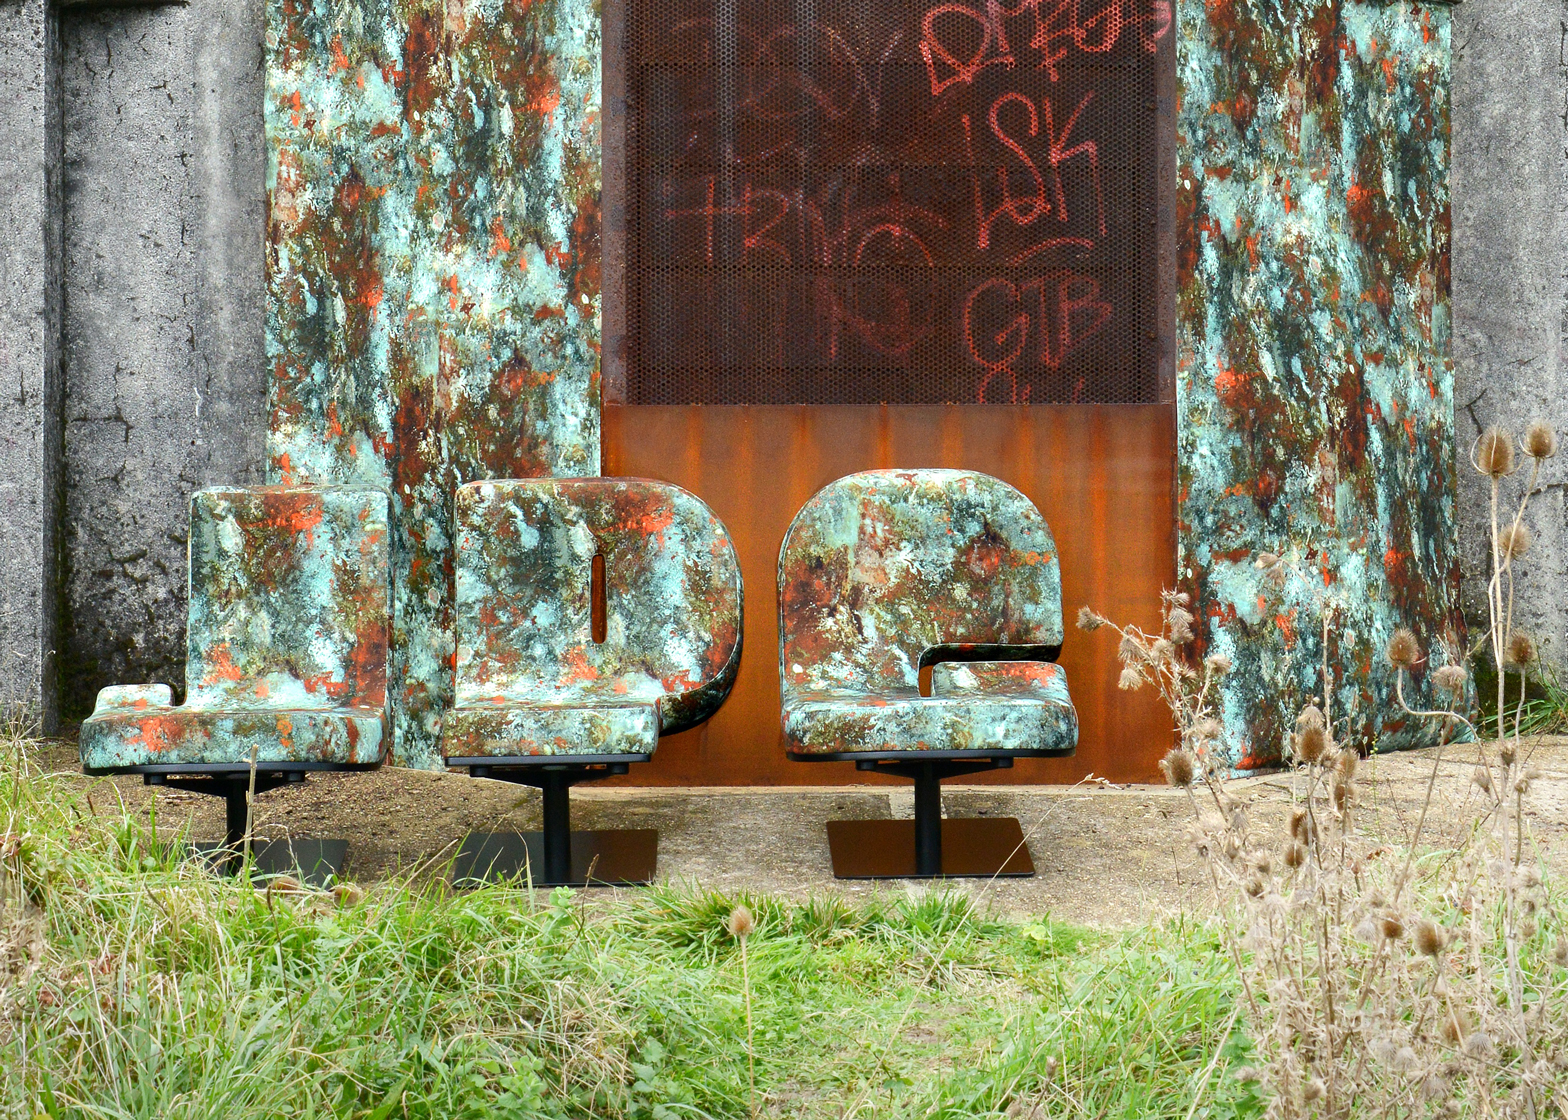 High Quality Jean Paul Gaultier Customises Typographia Chairs By Tabisso With  Rust Patterned Upholstery Design